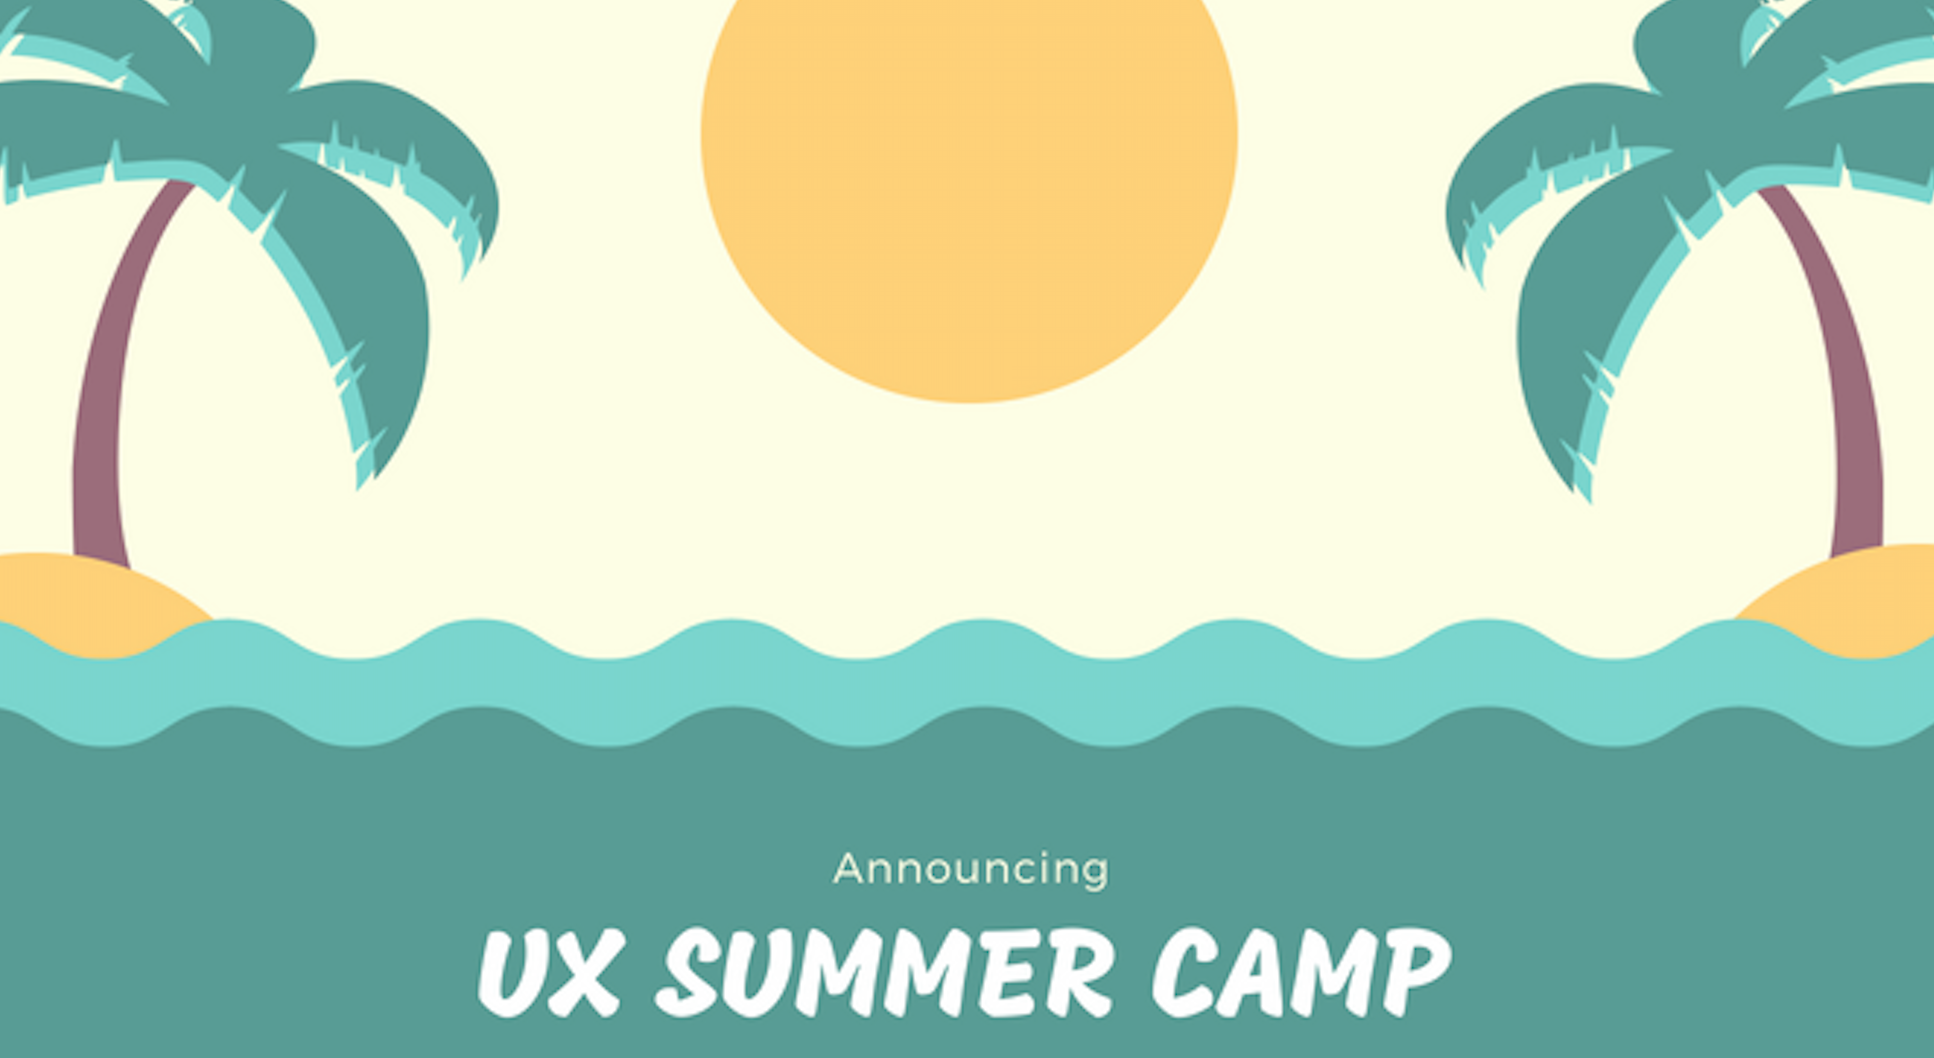 UX summer camp